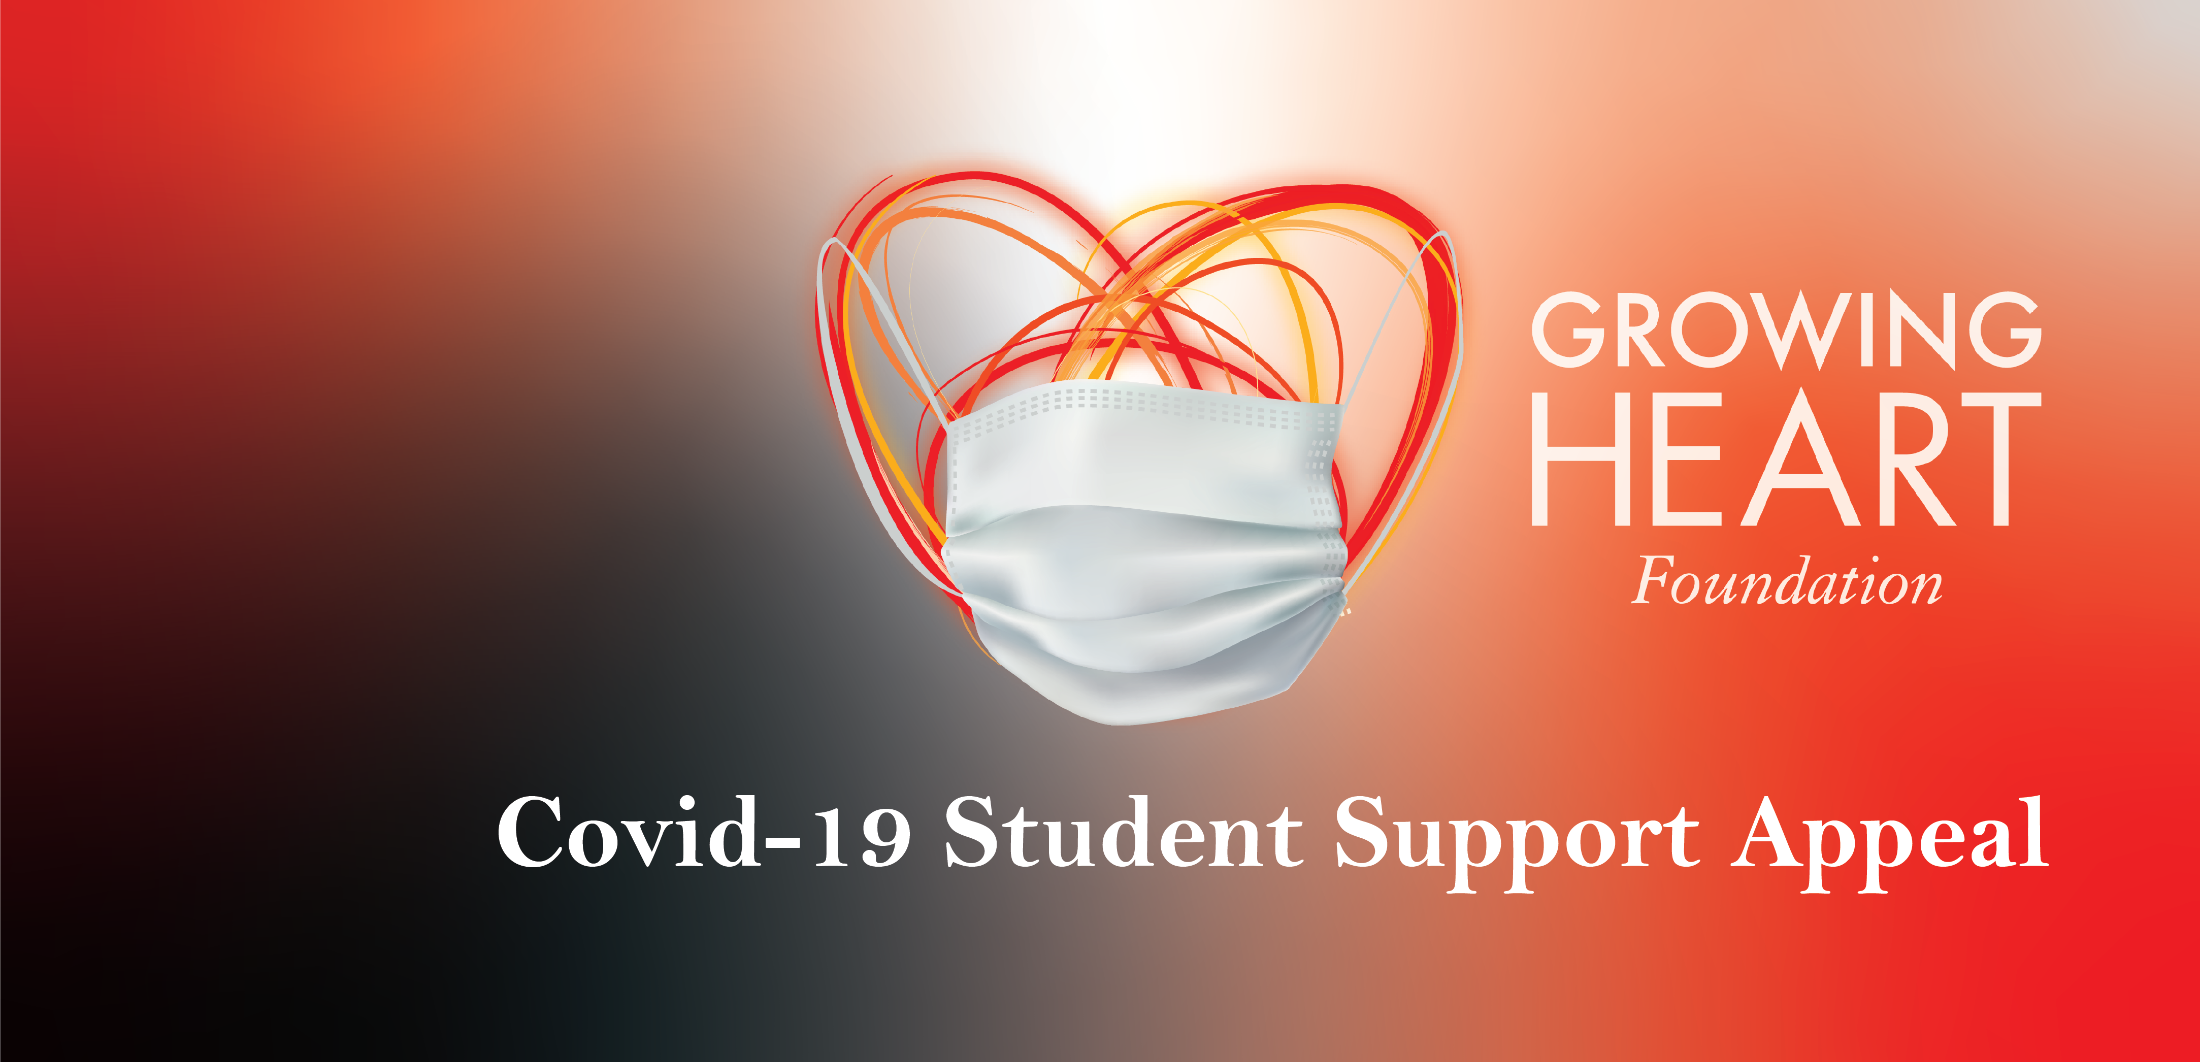 Growing Heart Covid Appeal Banner For Website